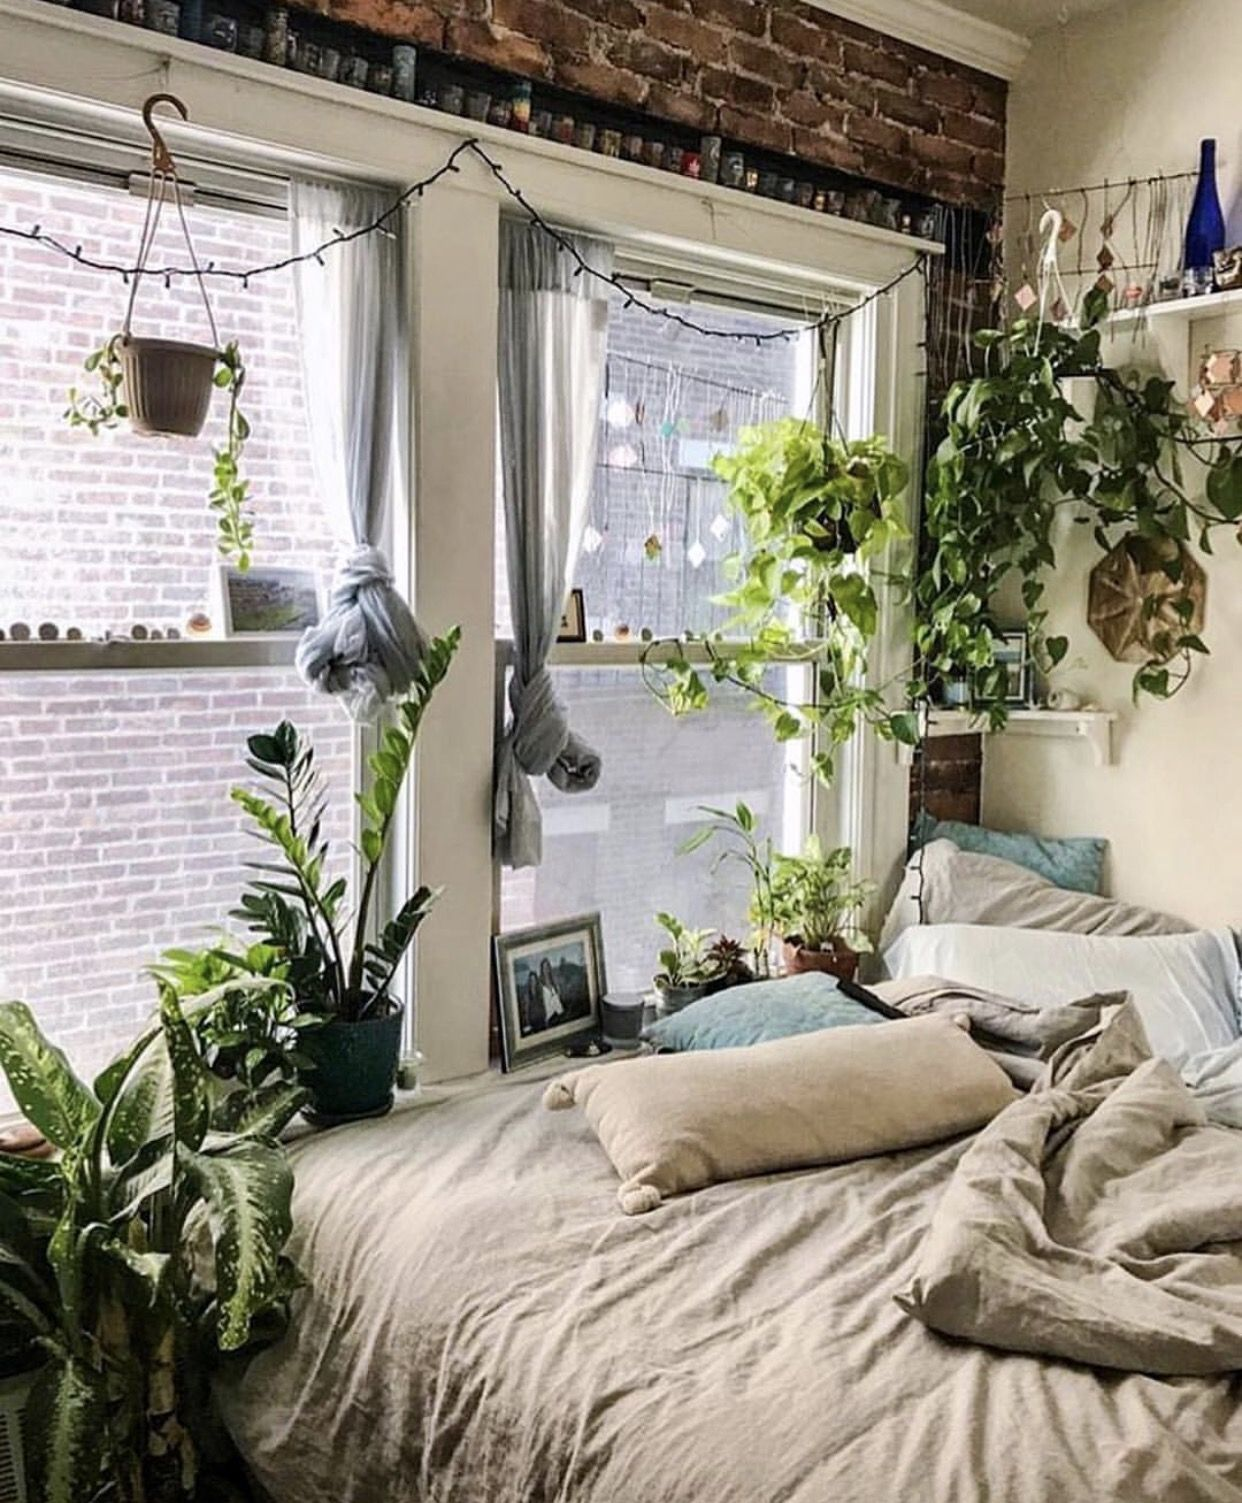 This Small Light Filled Bedroom Is Perfect For Plants